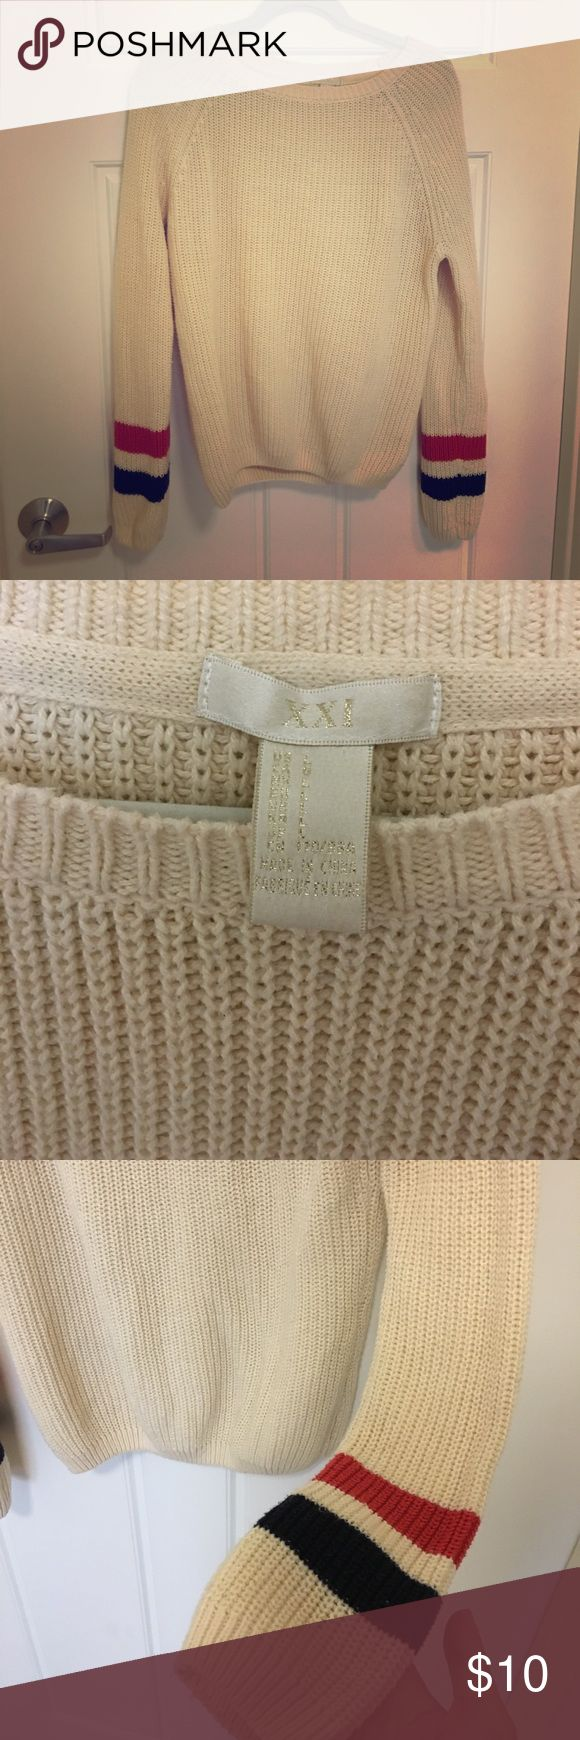 Forever 21 Knitted Sweater Large, cream color sweater with blue and red stripe accentuations on the sleeves. Knitted material, great for casual outfit or can dress it up for business casual. Forever 21 Sweaters